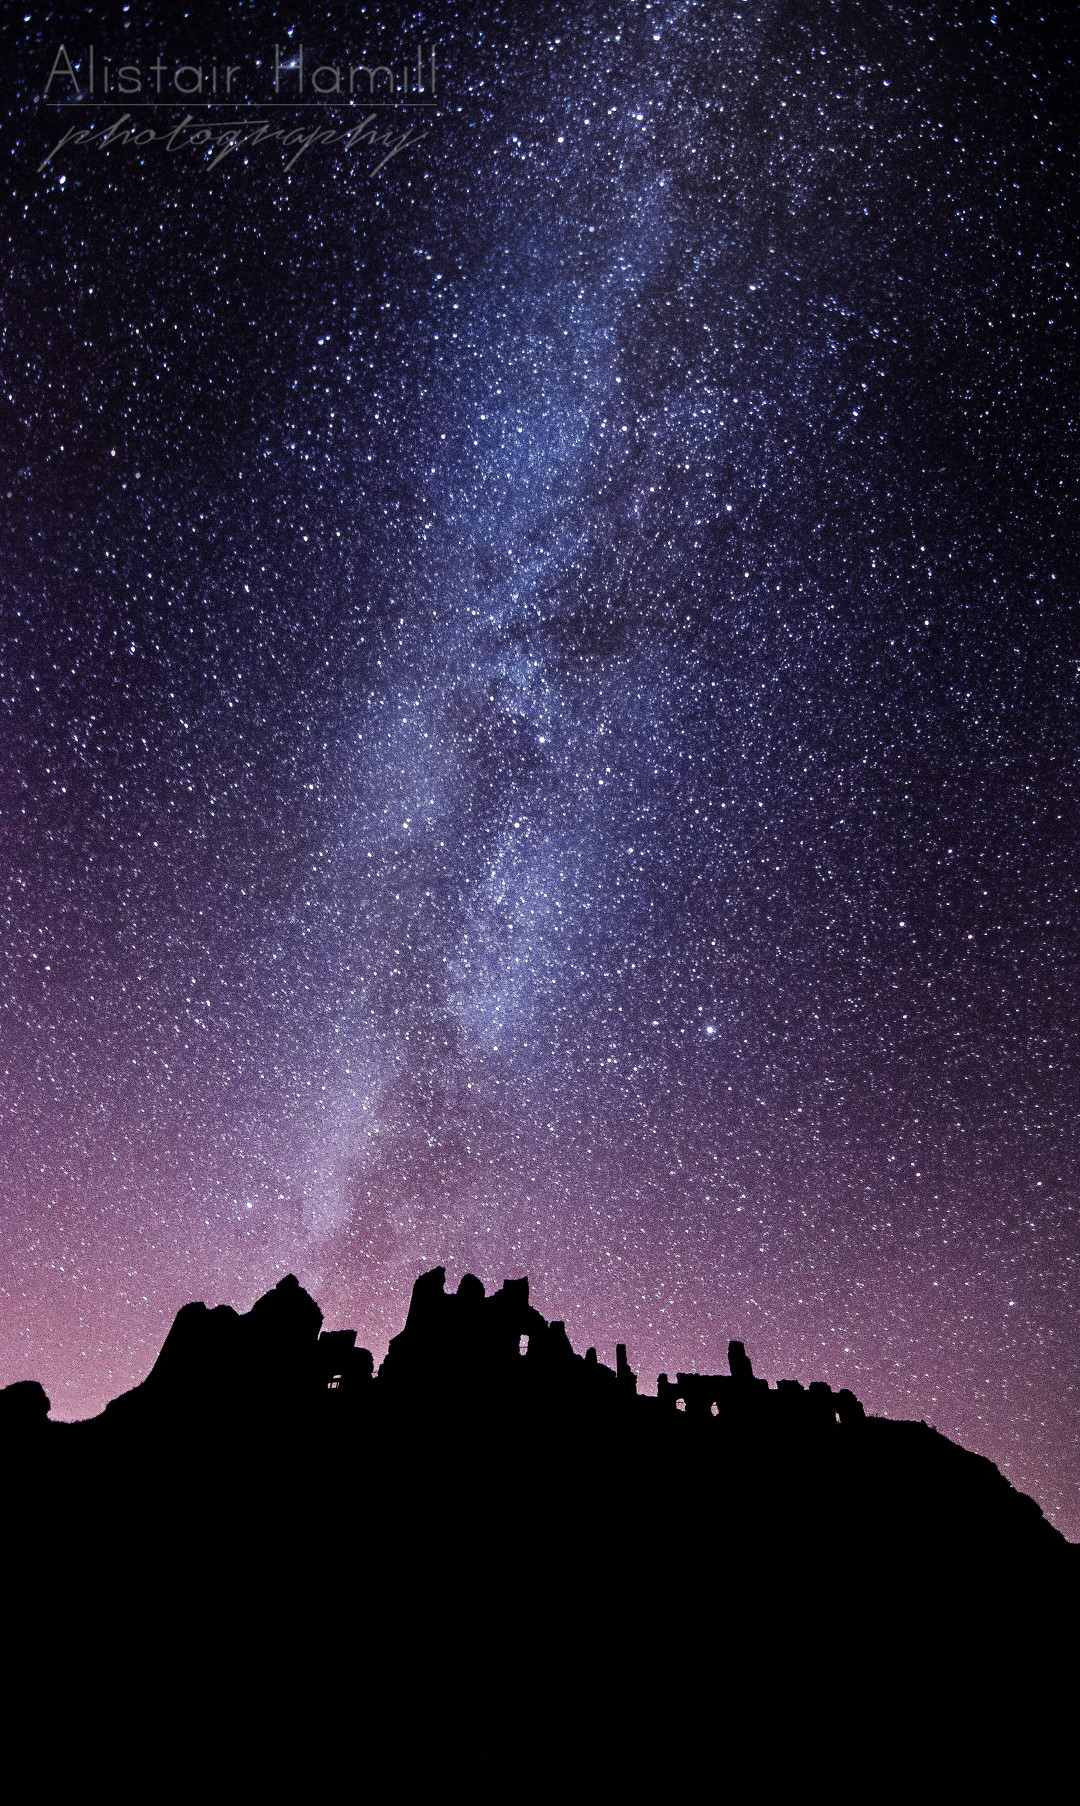 The Milky Way rising above Dunluce Castle. Click on this image to view it all in one screen.